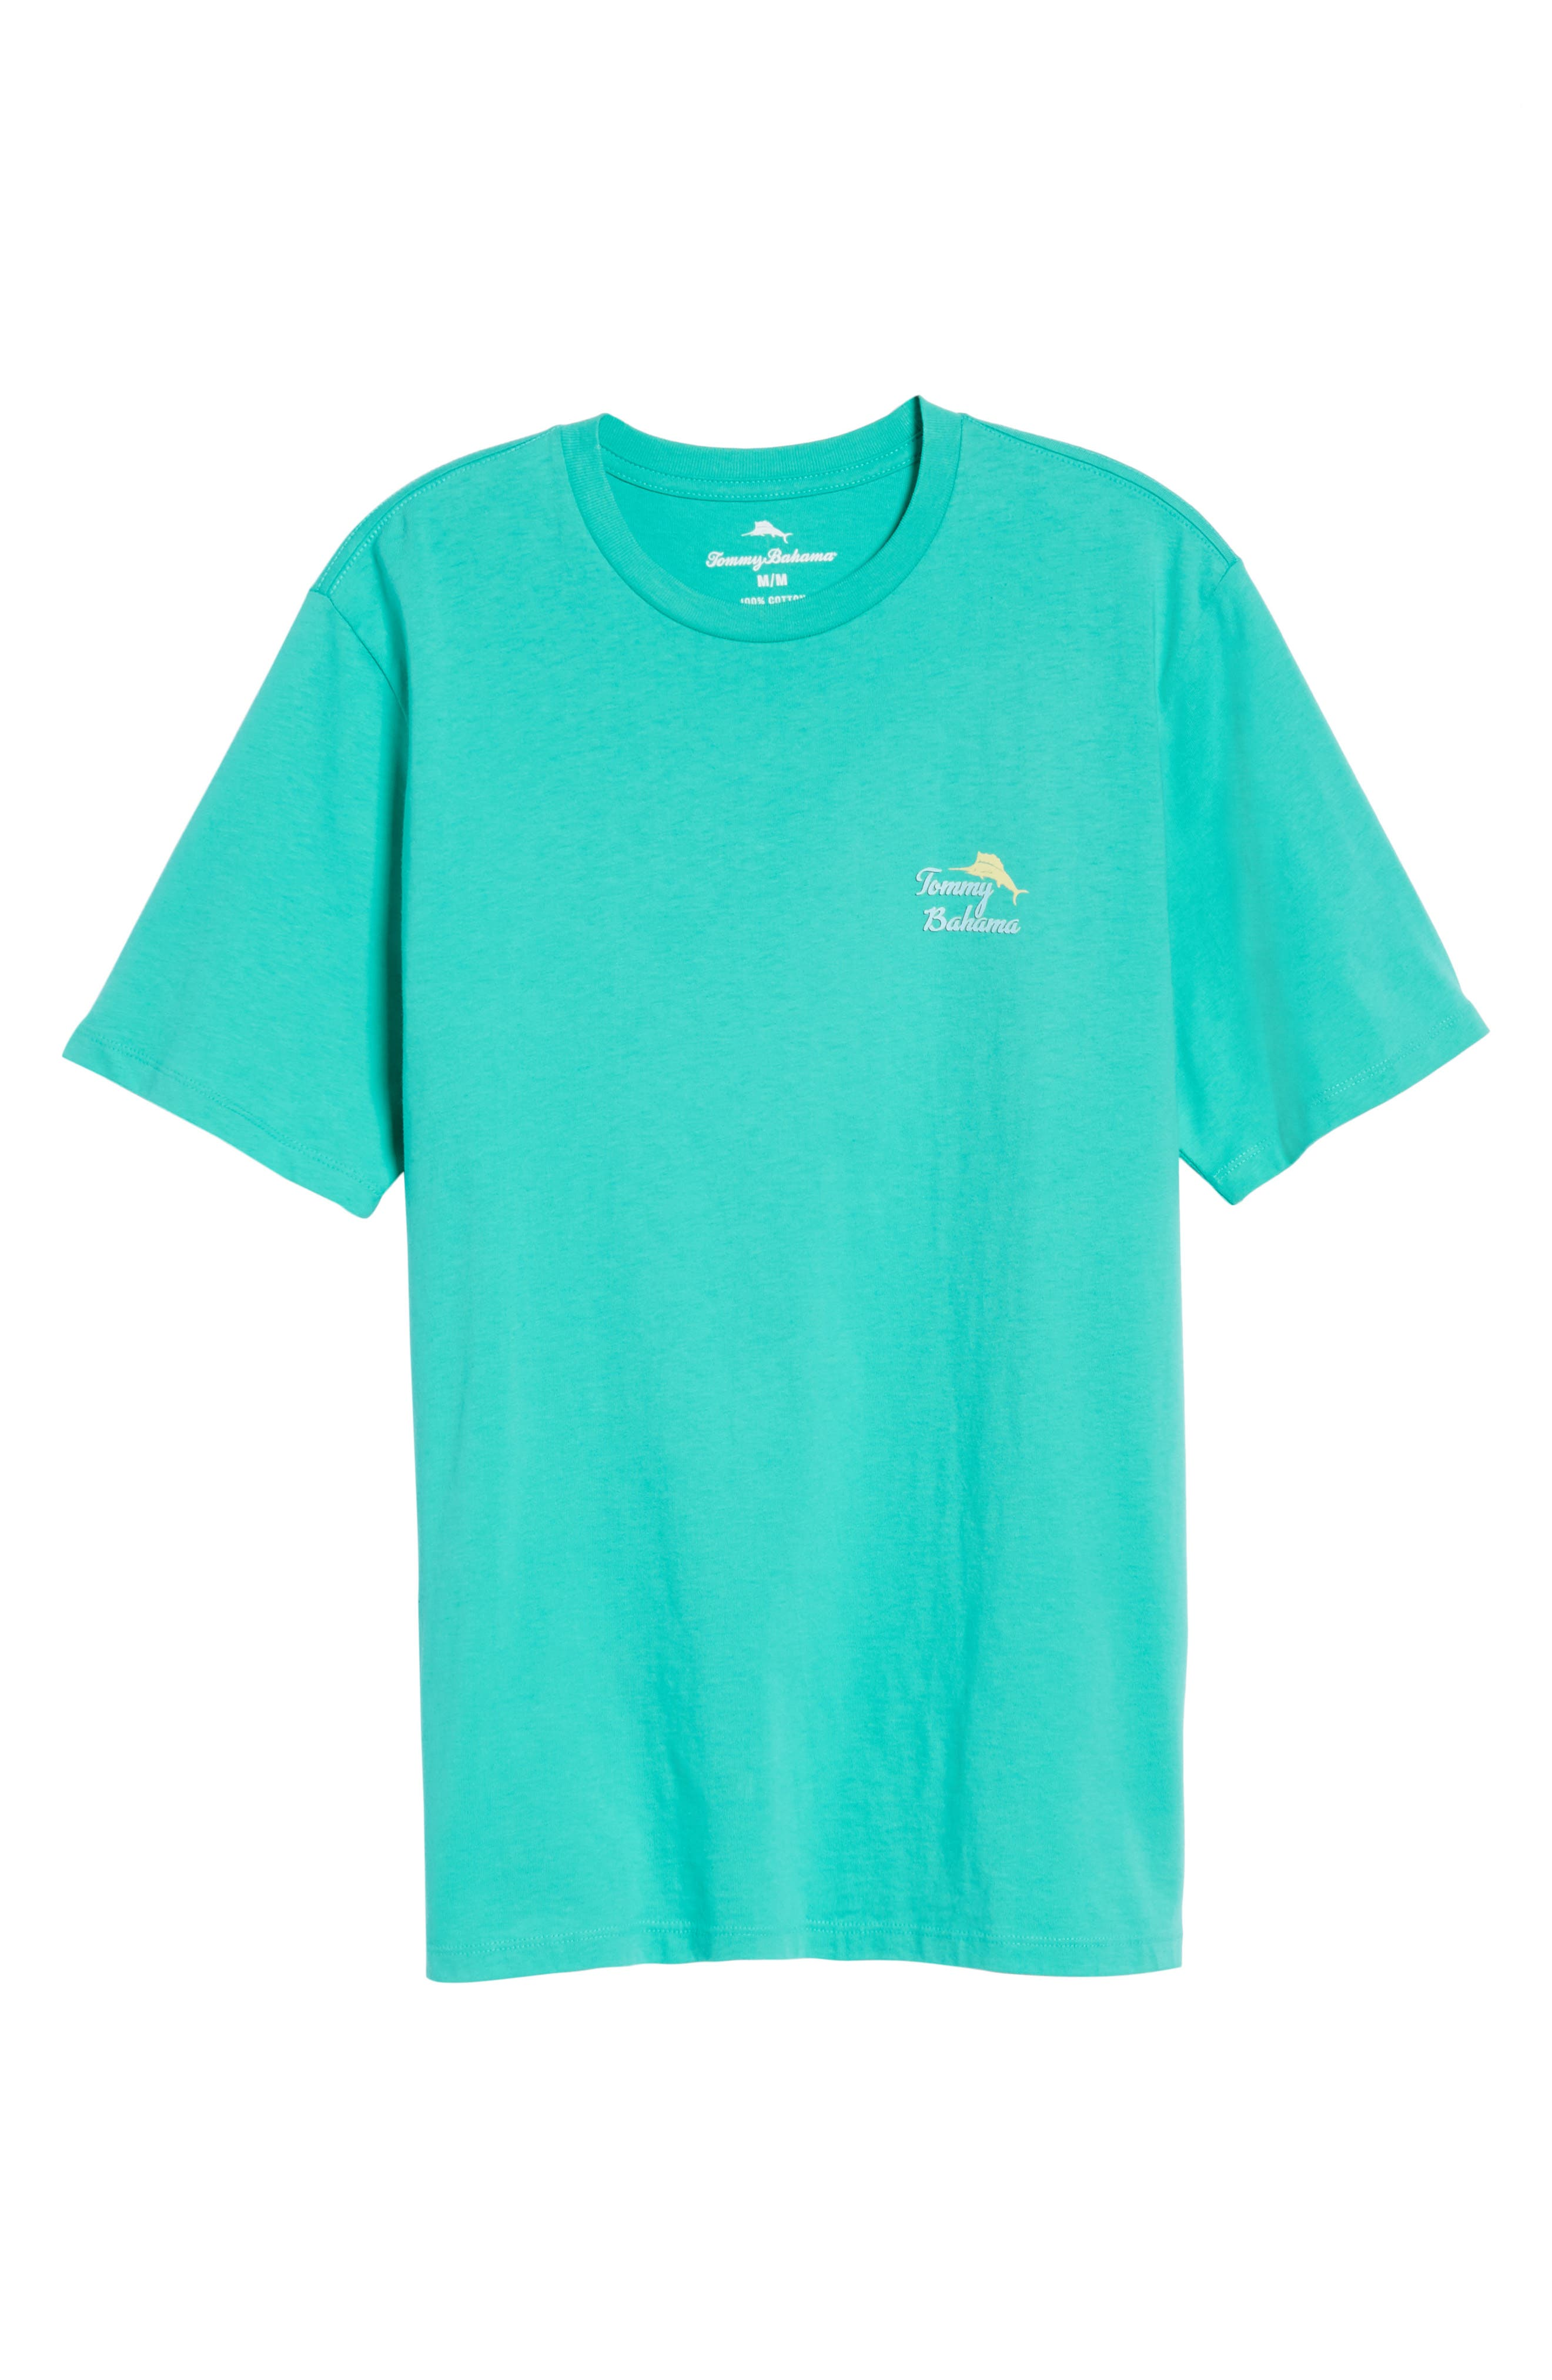 First Class Seat T-Shirt,                             Alternate thumbnail 6, color,                             Cave Green